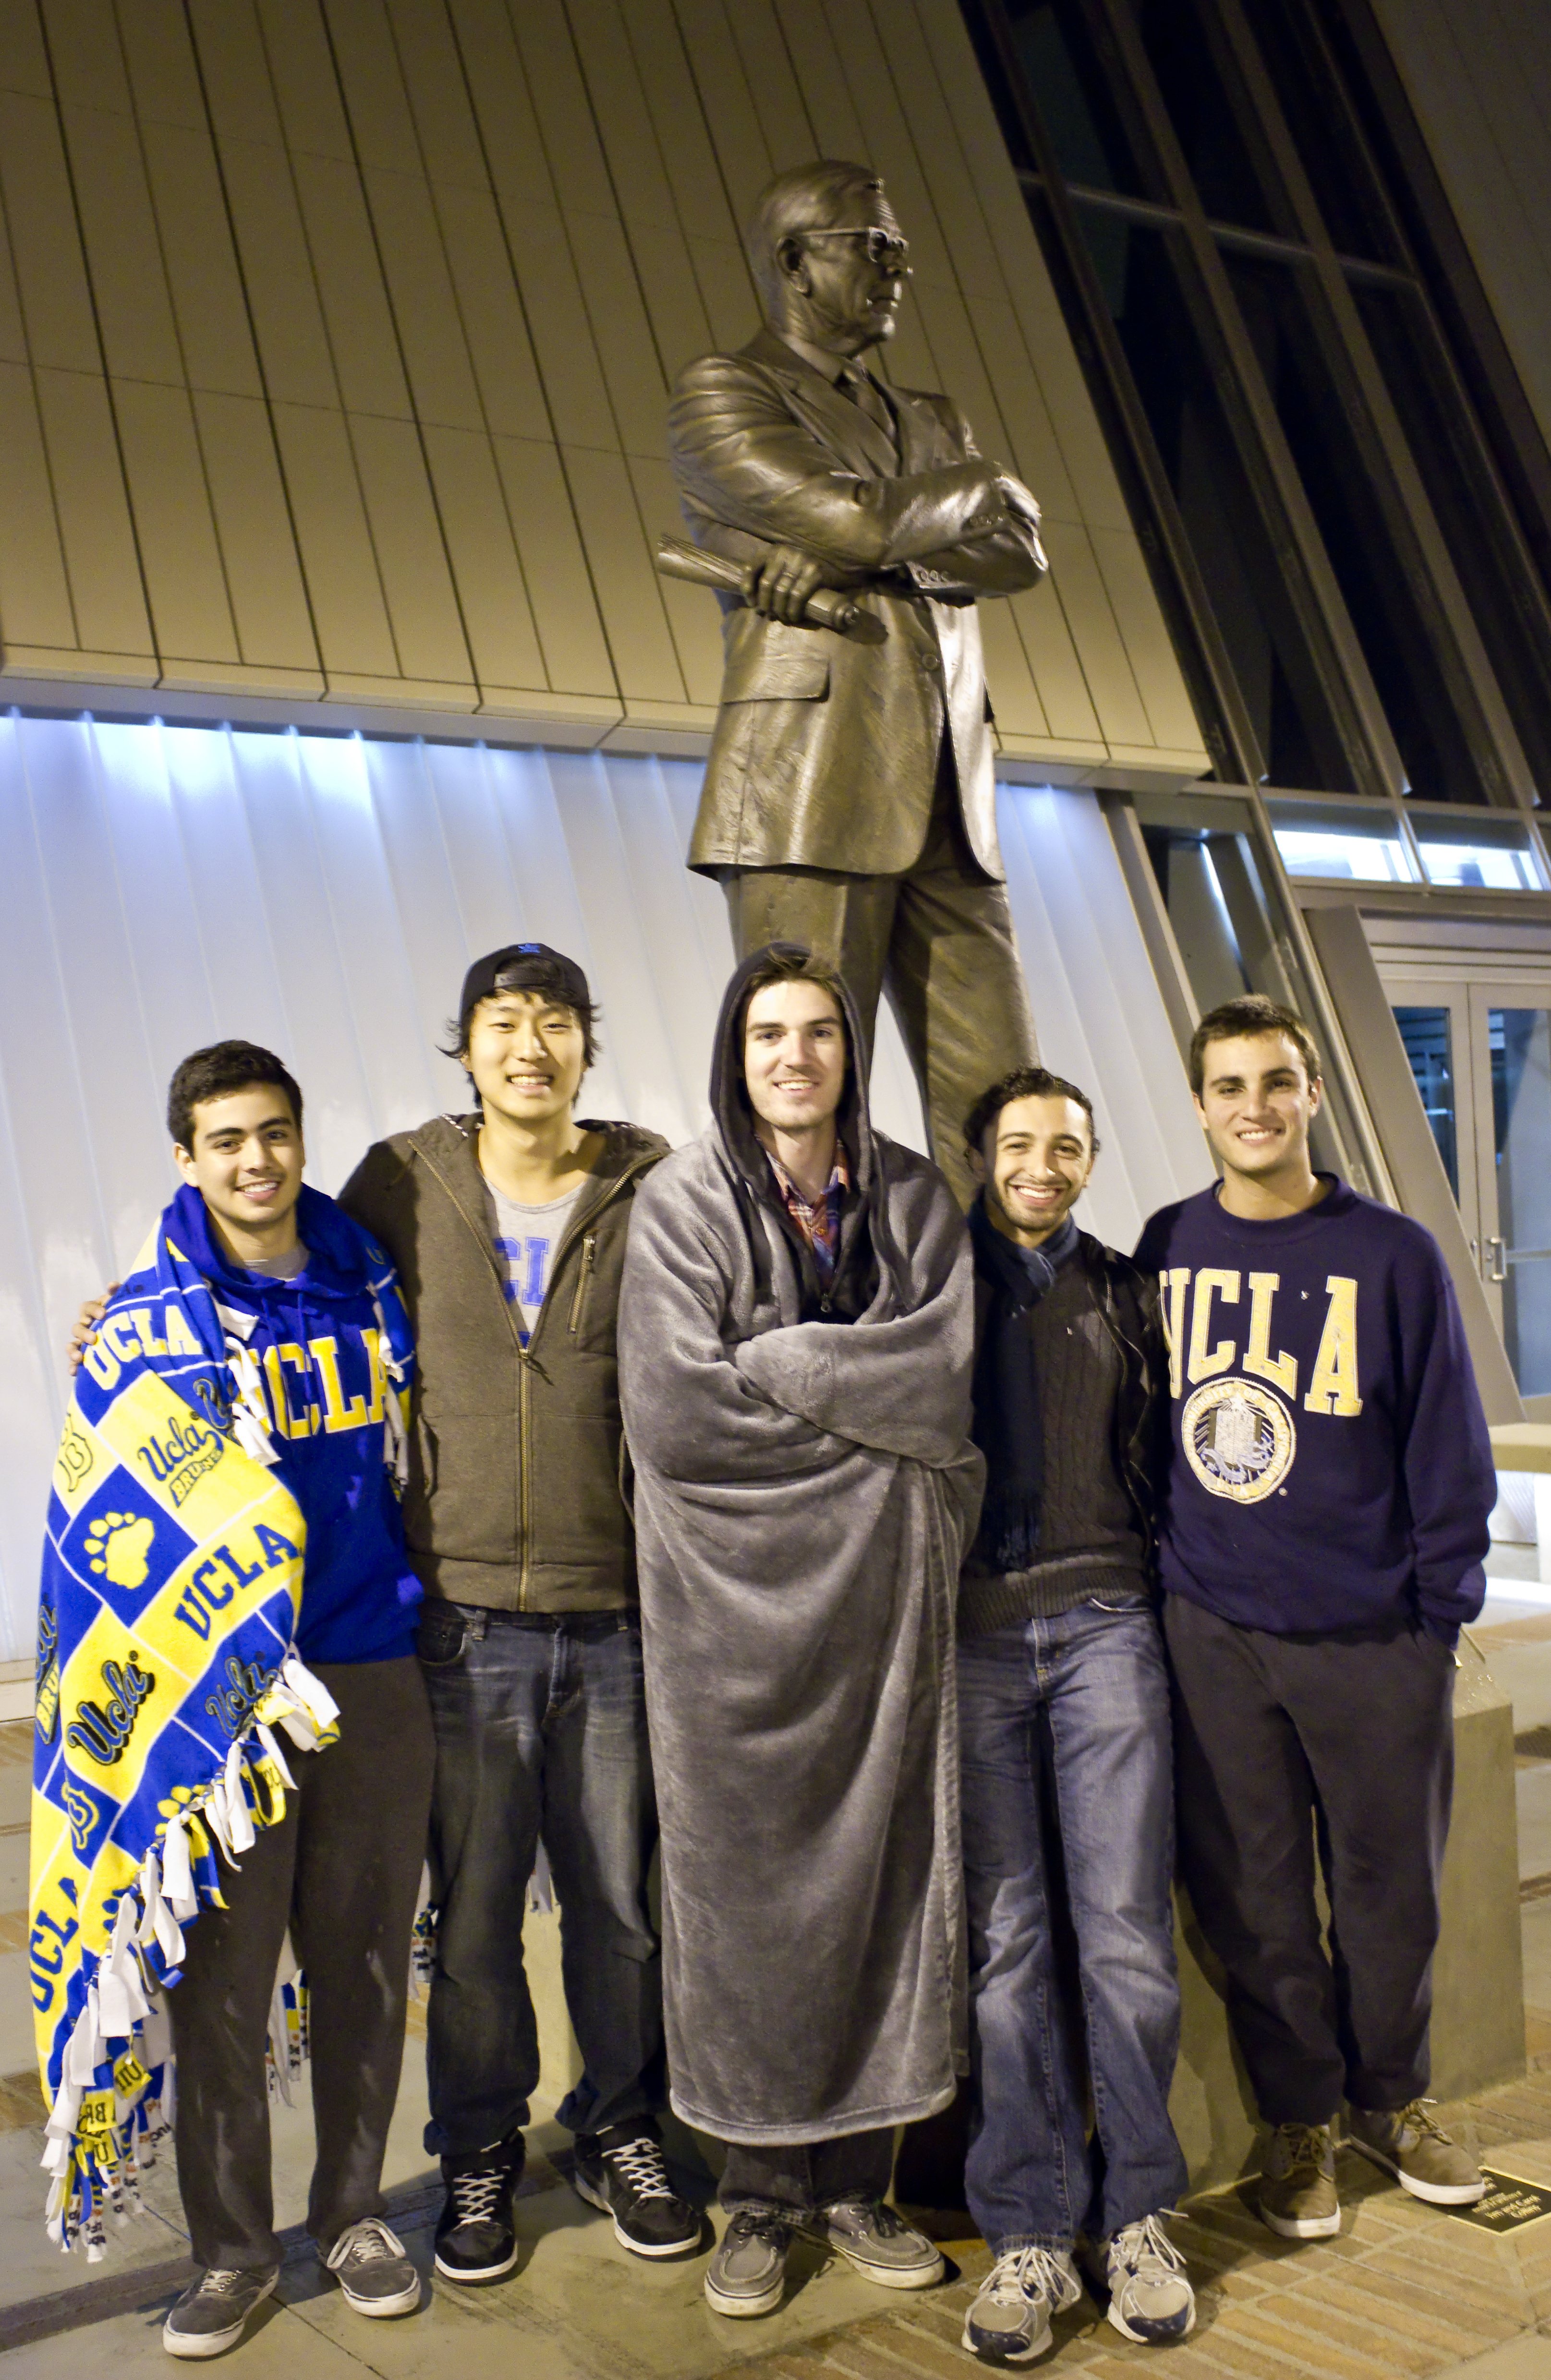 UCLA students stay out all night in front of the John Wooden statue outside Pauley Pavilion to ward of potential USC pranksters during the week leading up to the annual UCLA-USC football game.